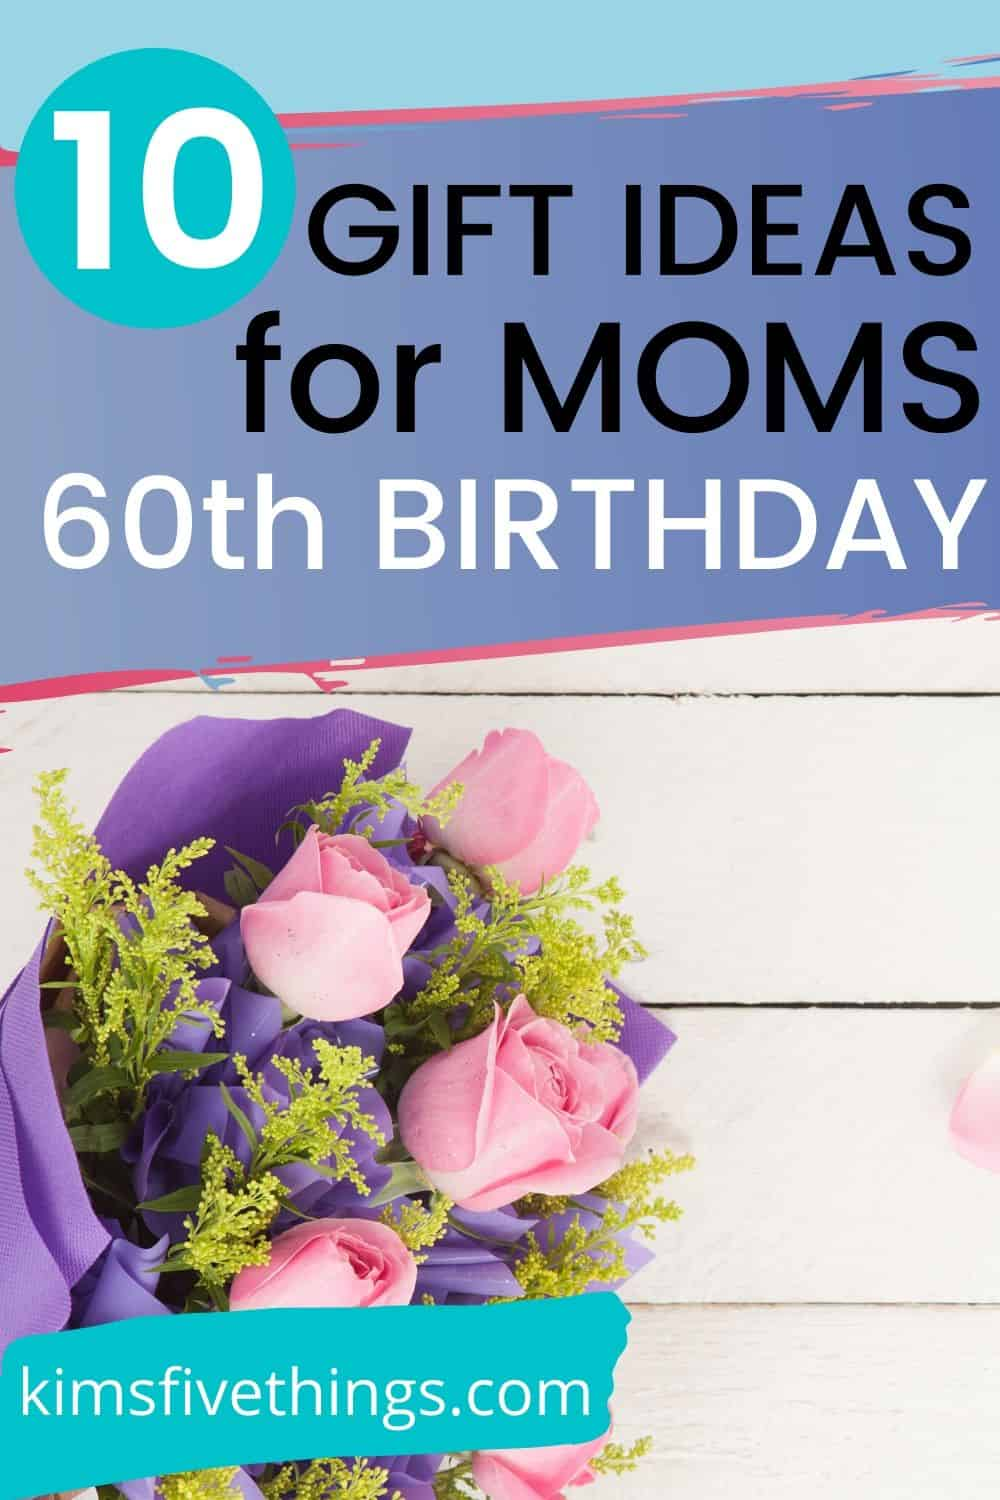 60th birthday gift ideas for mom